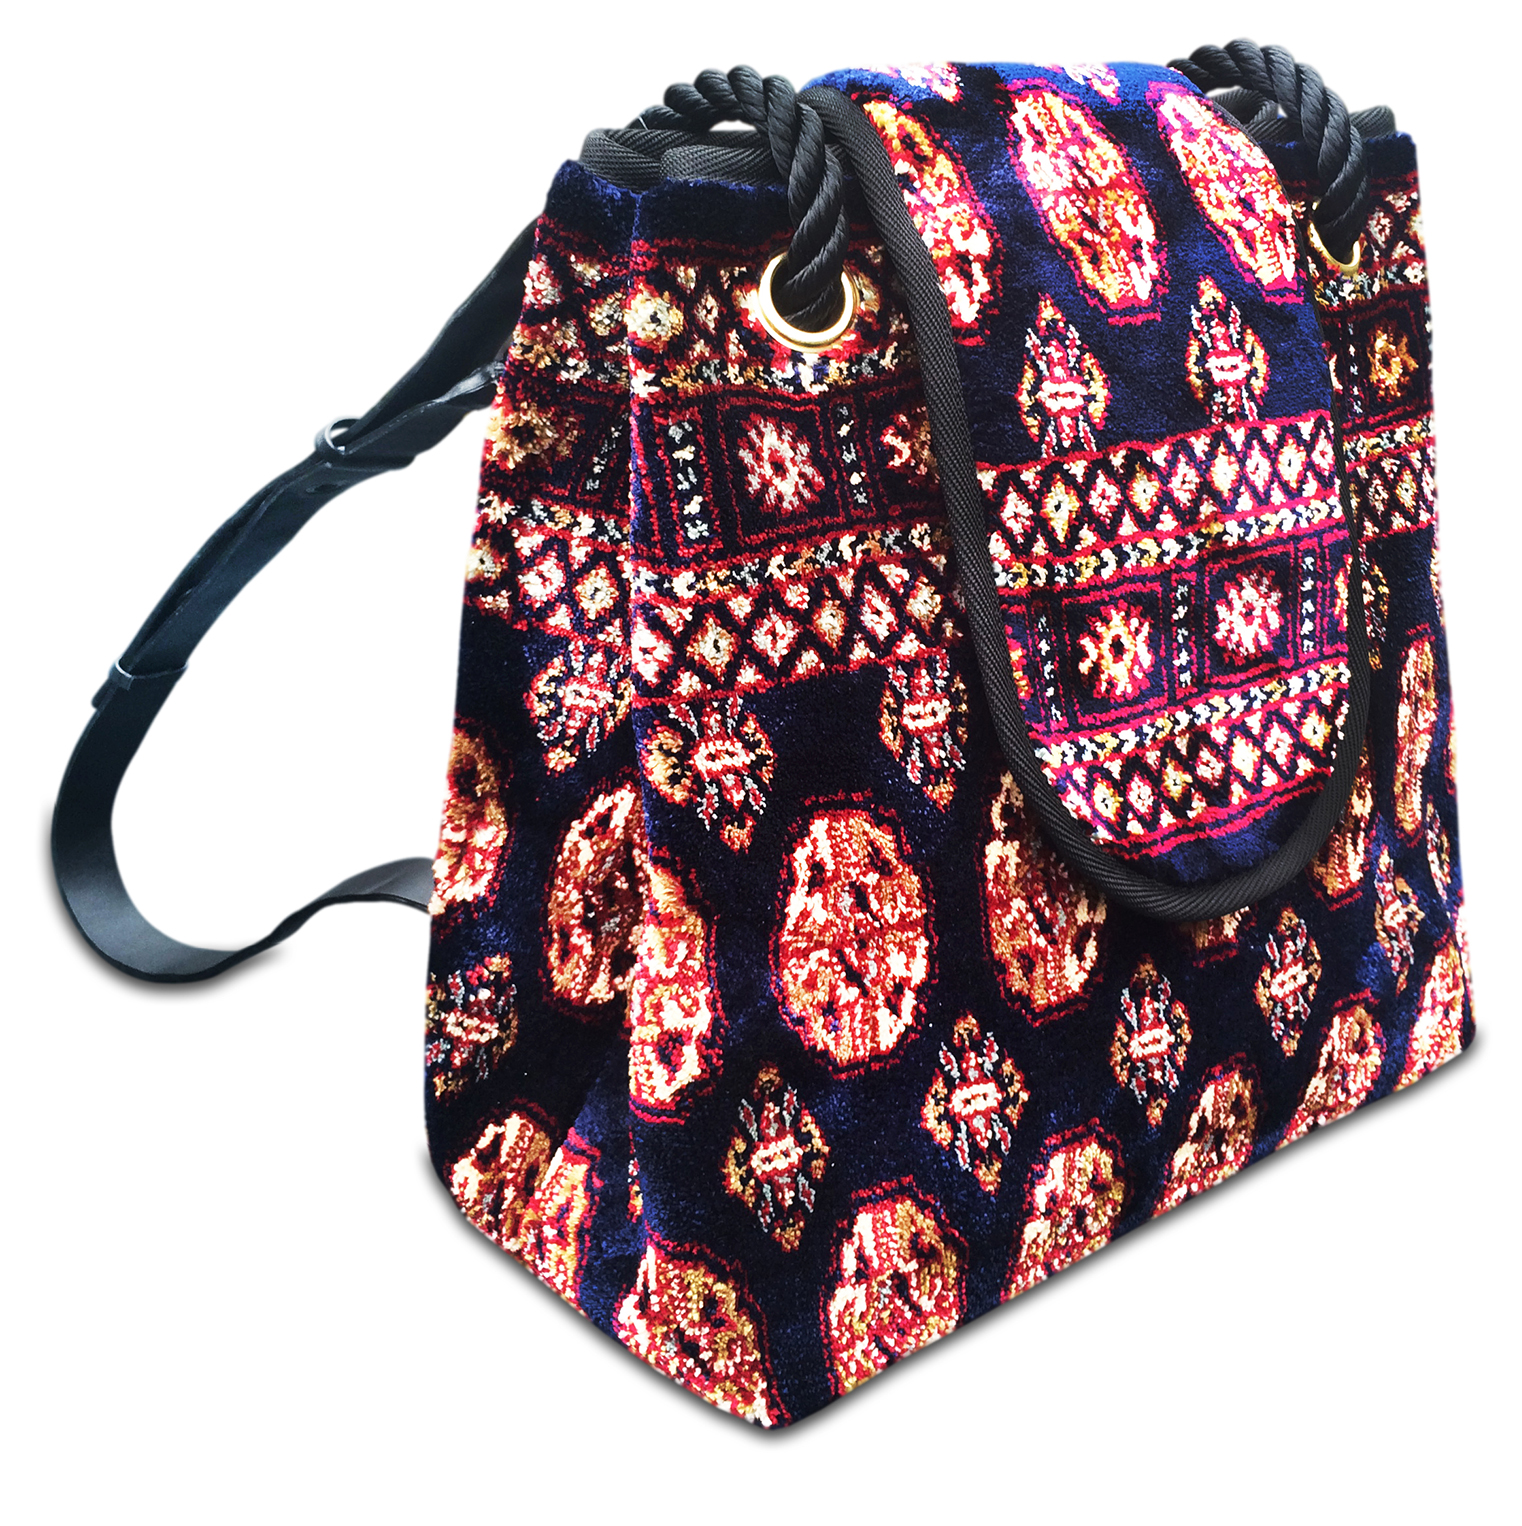 Image of BACKPACK Bukhara Navy Victorian Carpet Bag.